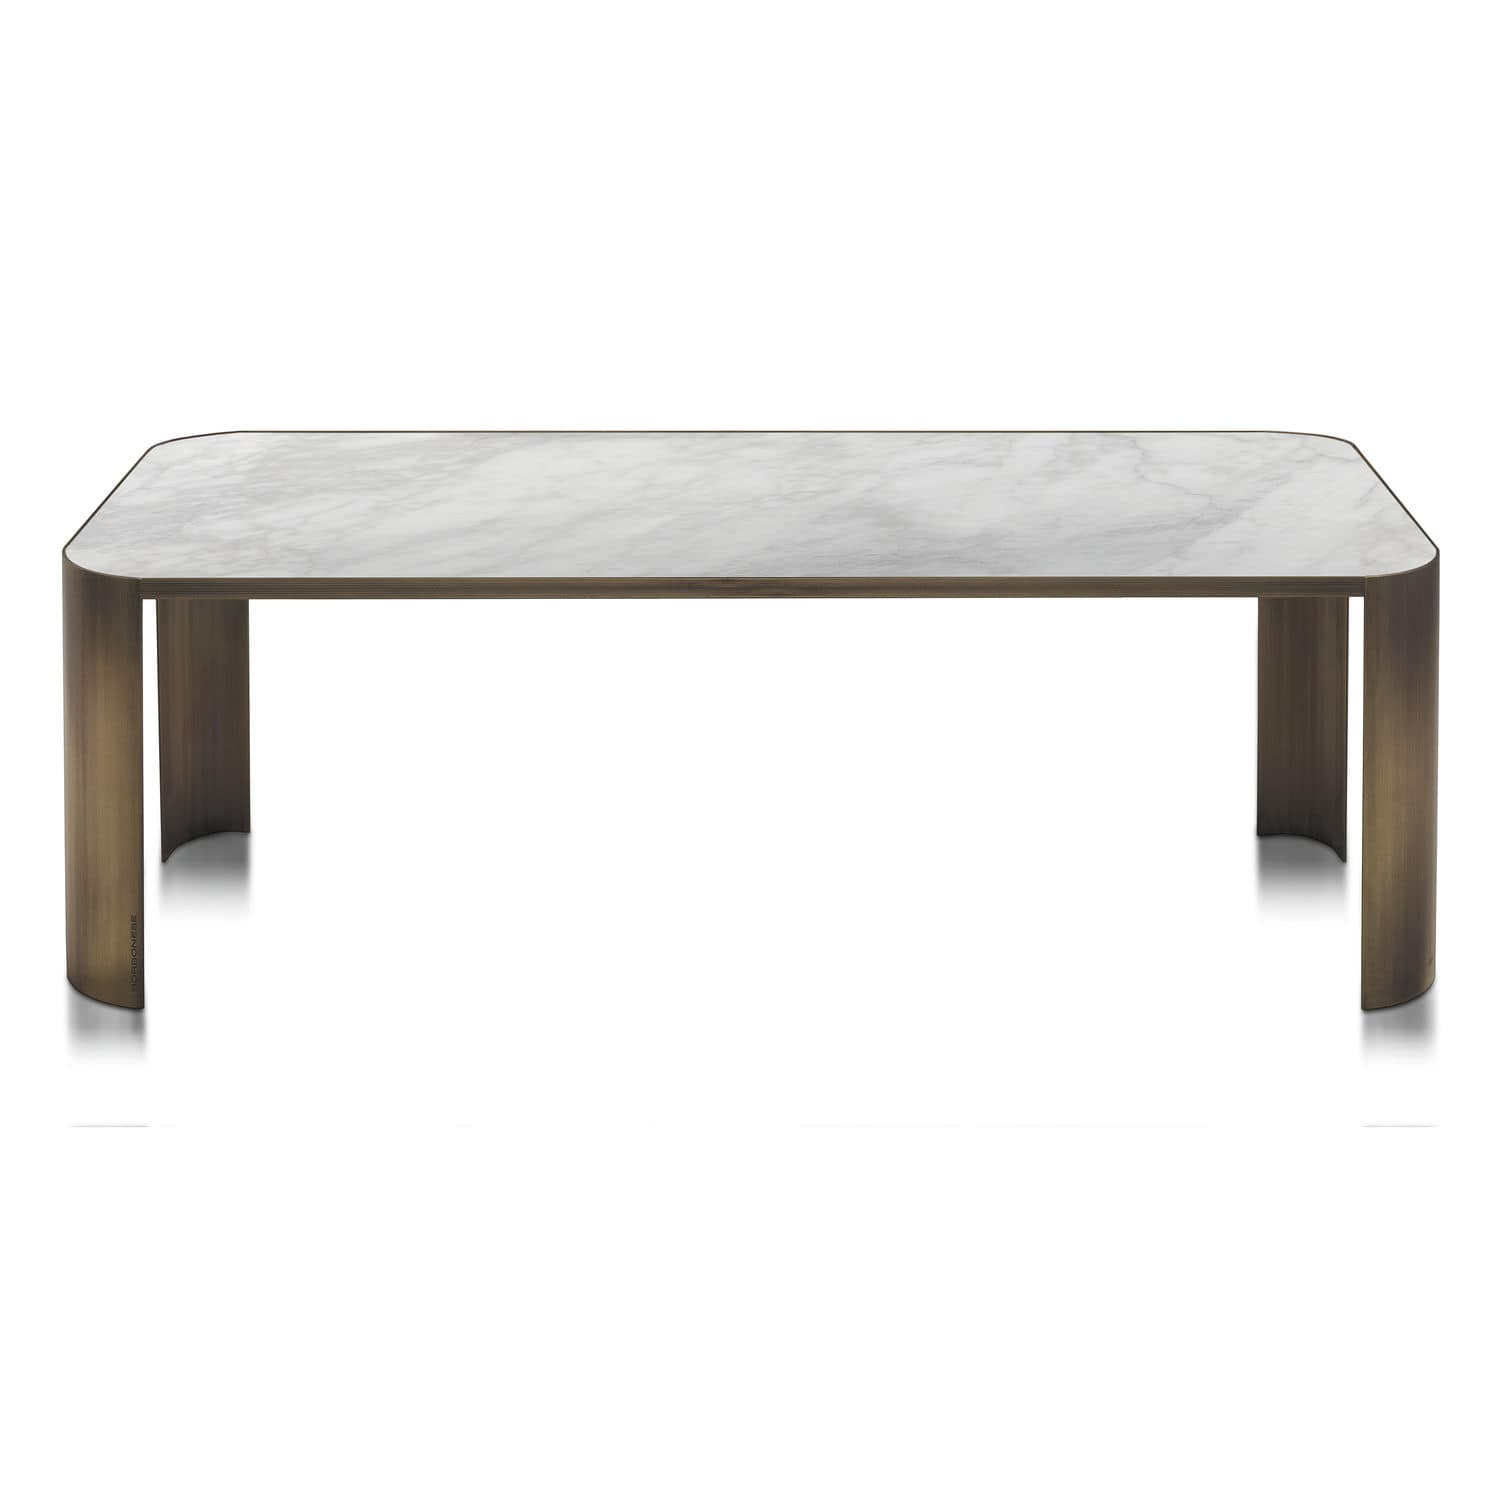 Contemporary dining table marble brass rectangular